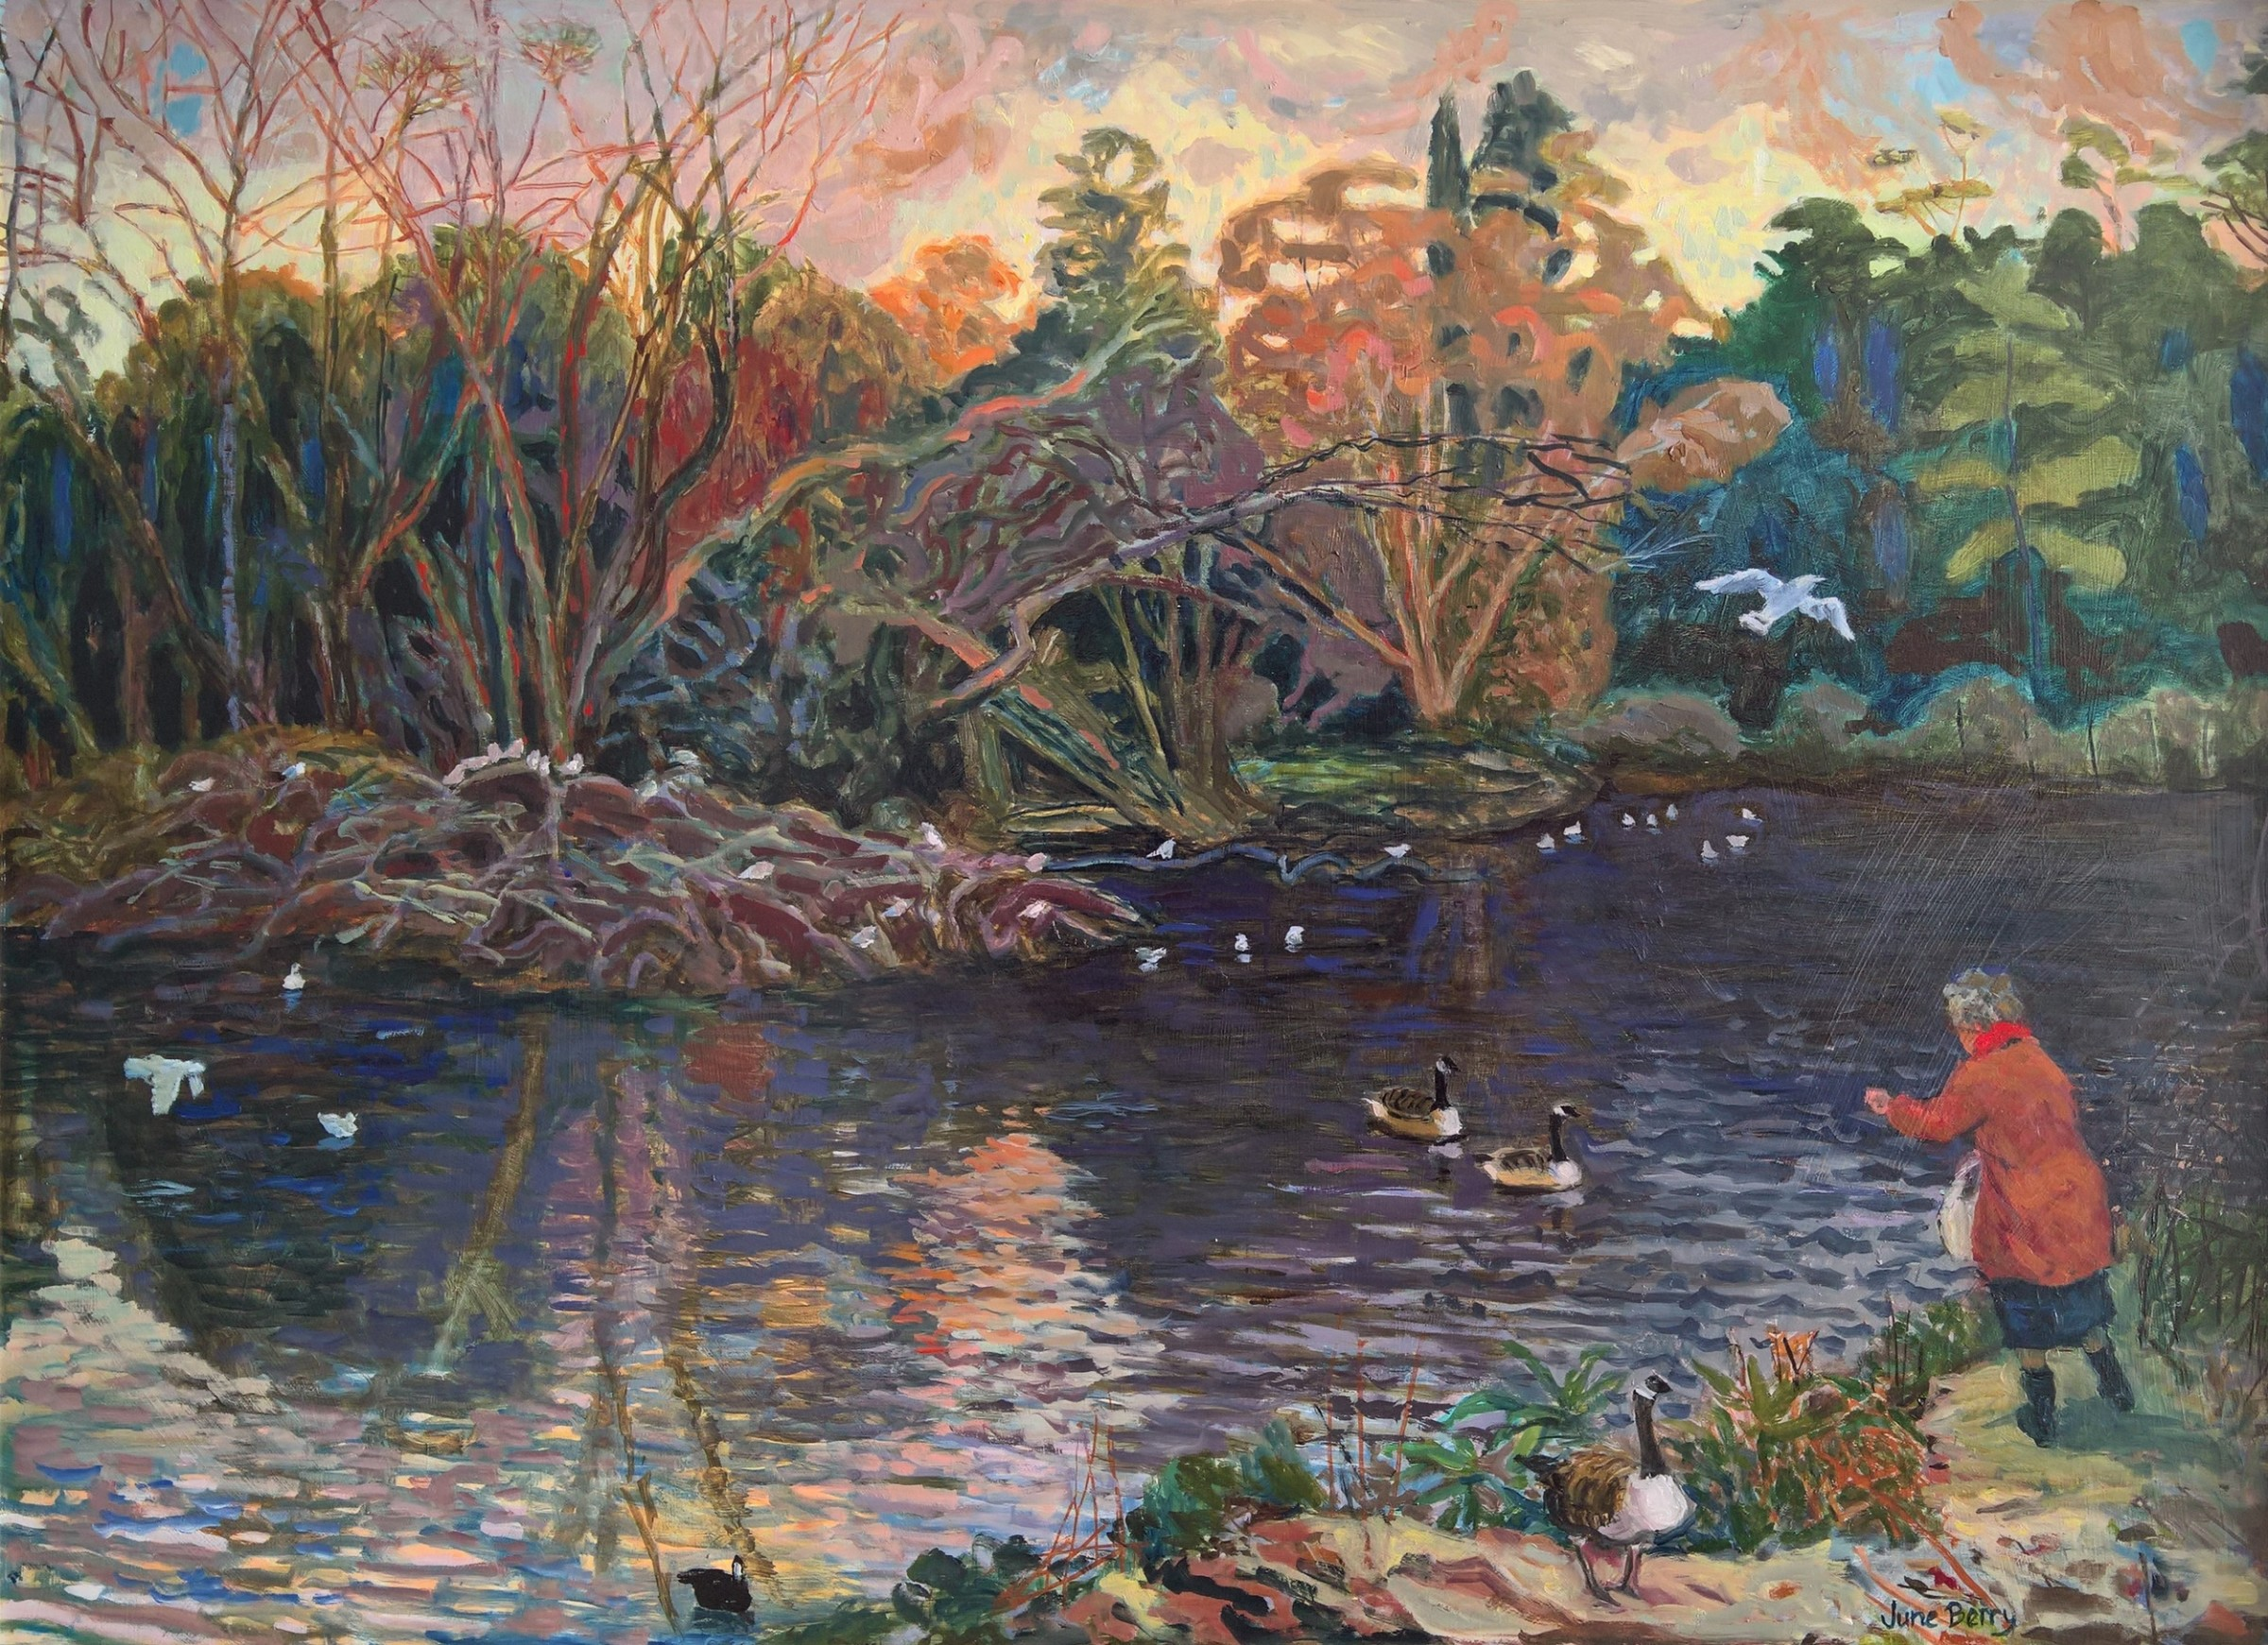 """<span class=""""link fancybox-details-link""""><a href=""""/artists/40-june-berry/works/12350-june-berry-the-lake-winter-afternoon/"""">View Detail Page</a></span><div class=""""artist""""><span class=""""artist""""><strong>June Berry</strong></span></div><div class=""""title""""><em>The Lake, Winter Afternoon</em></div><div class=""""medium"""">oil</div><div class=""""dimensions"""">Frame: 62 x 79 cm<br /> Artwork: 49 x 66 cm</div><div class=""""price"""">£1,500.00</div>"""